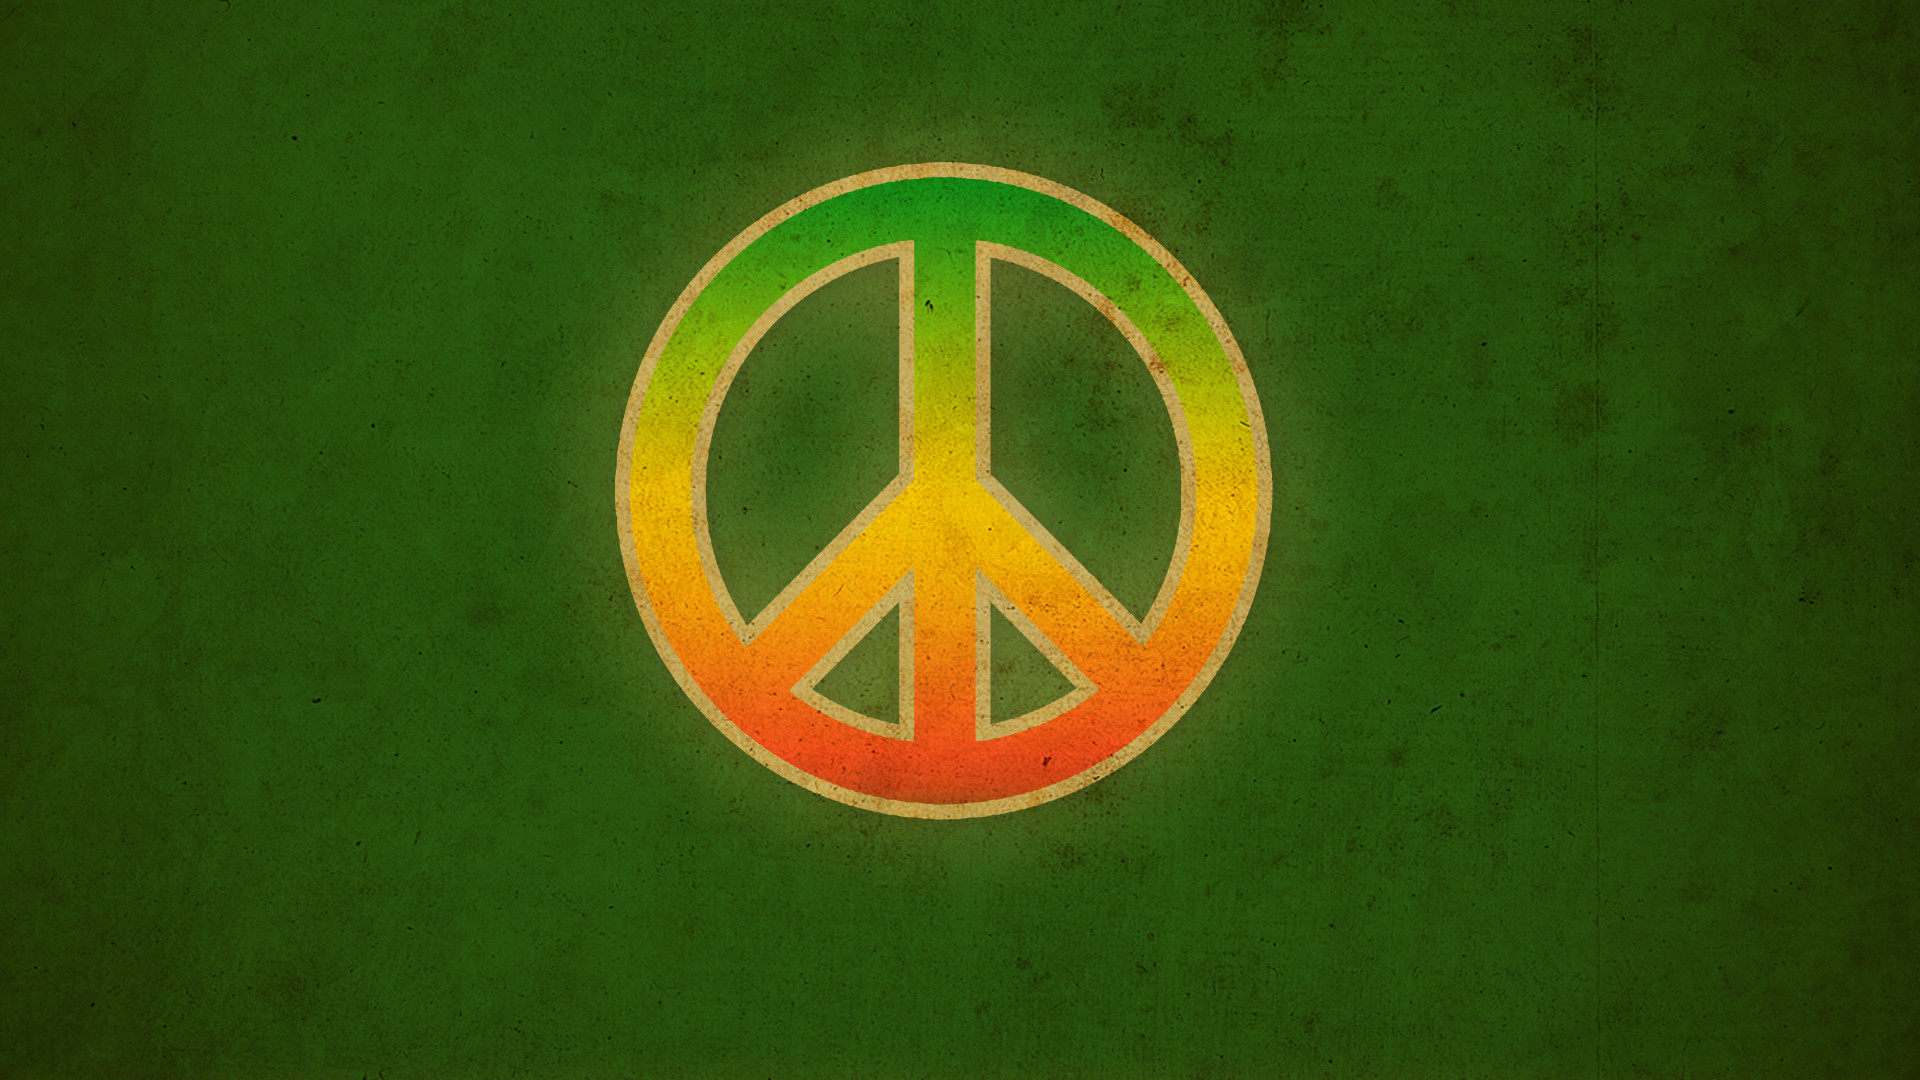 Peace sign desktop wallpaper 58 images - Peace hd wallpapers free download ...